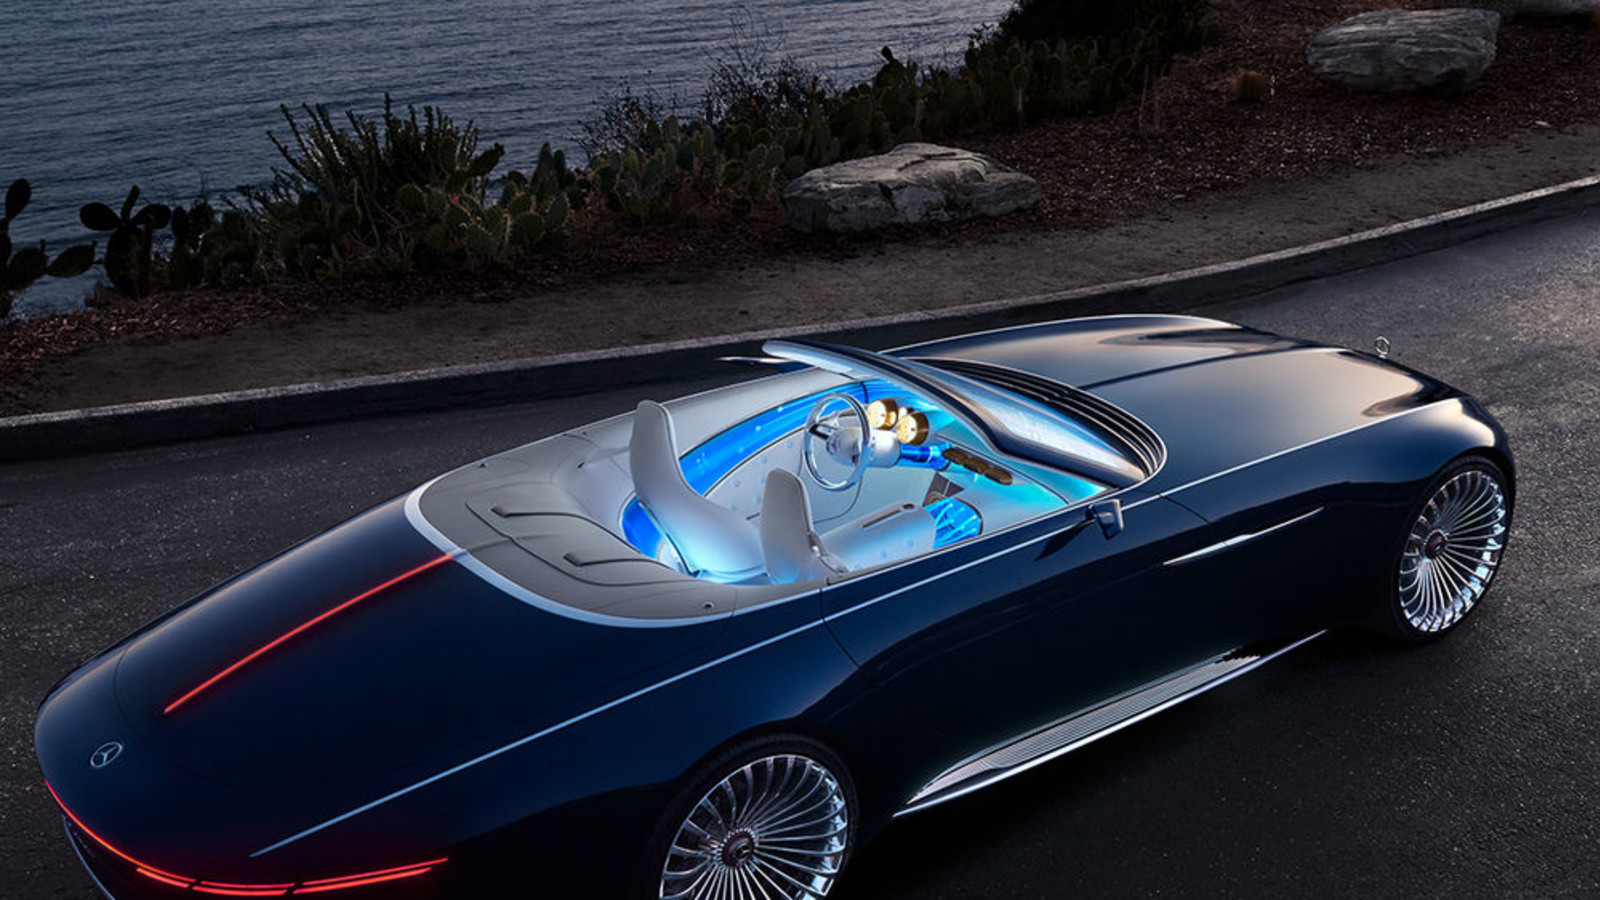 Mercedes-Maybach 6 Cabriolet, Pebble Beach